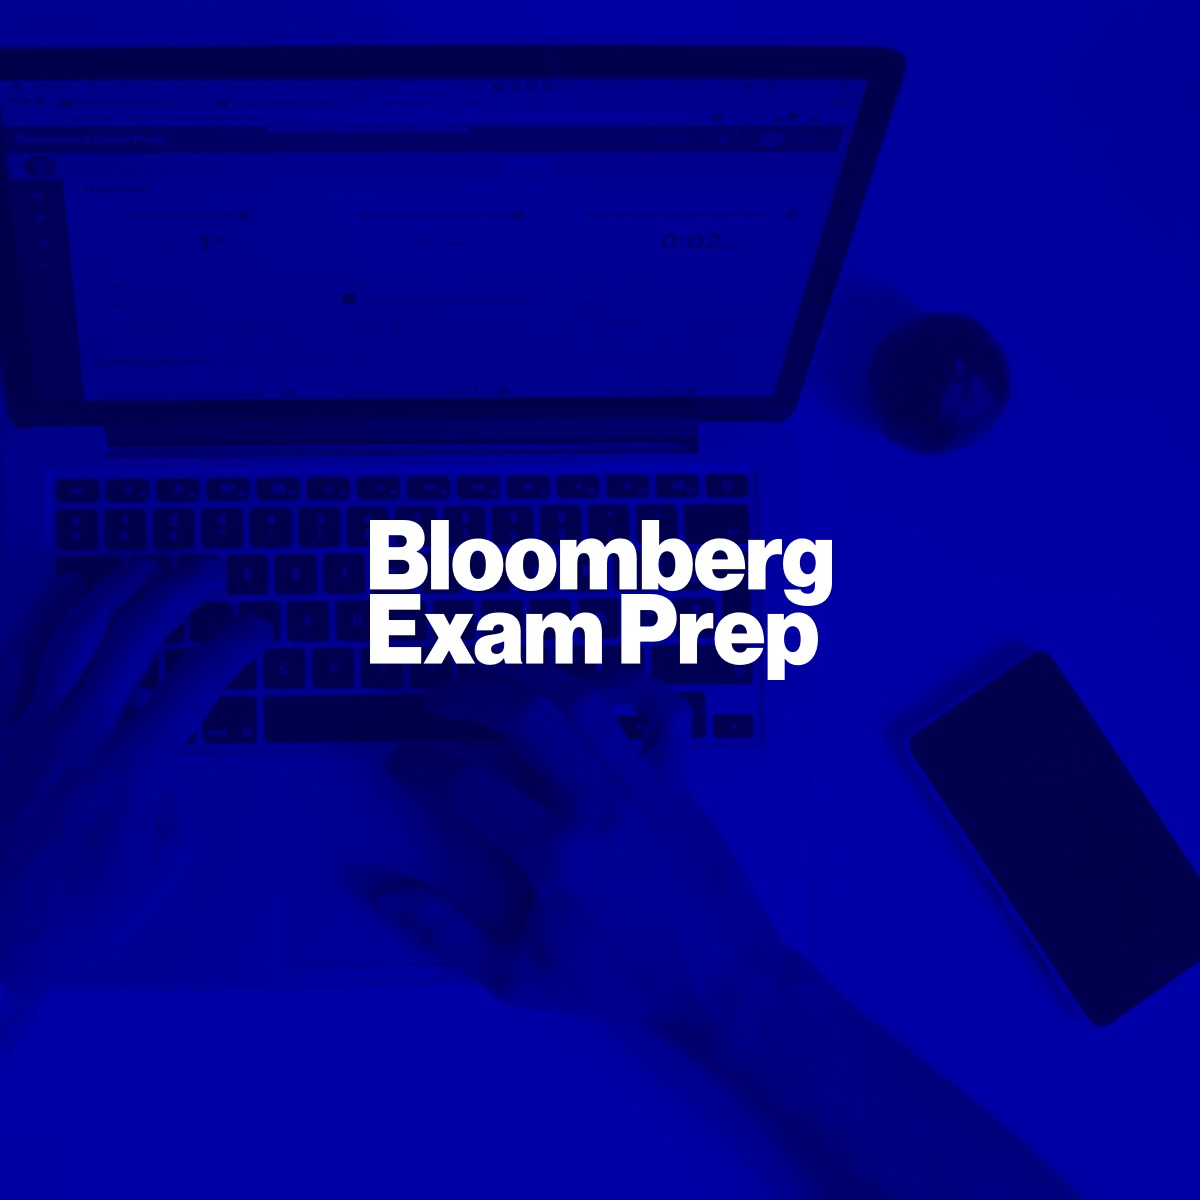 Bloombergs Cfa Prep The Quickest Way To Get Your Cfa Charter